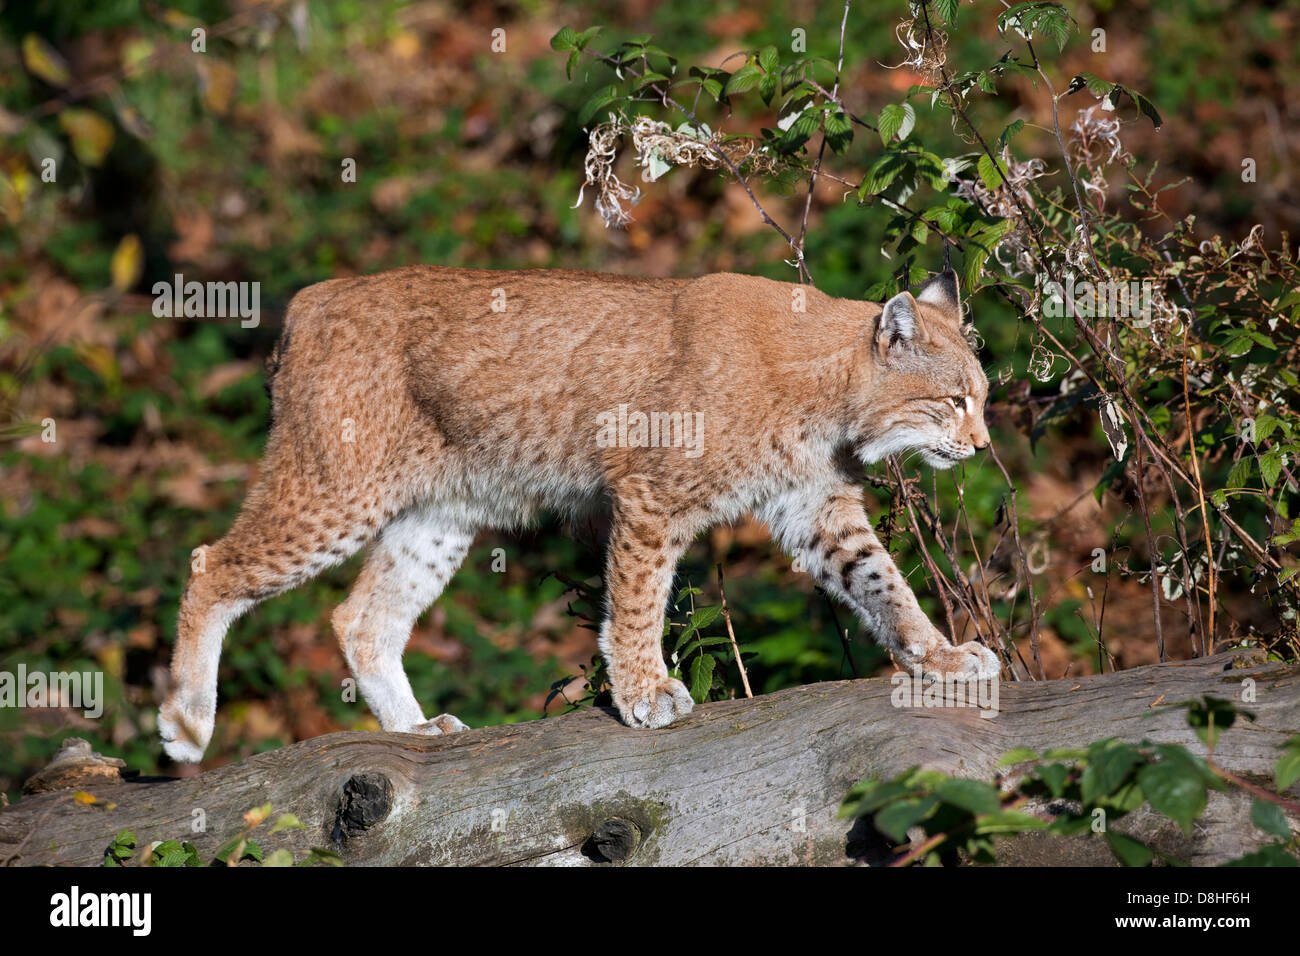 Eurasian lynx (Lynx lynx) walking over tree trunk in forest - Stock Image